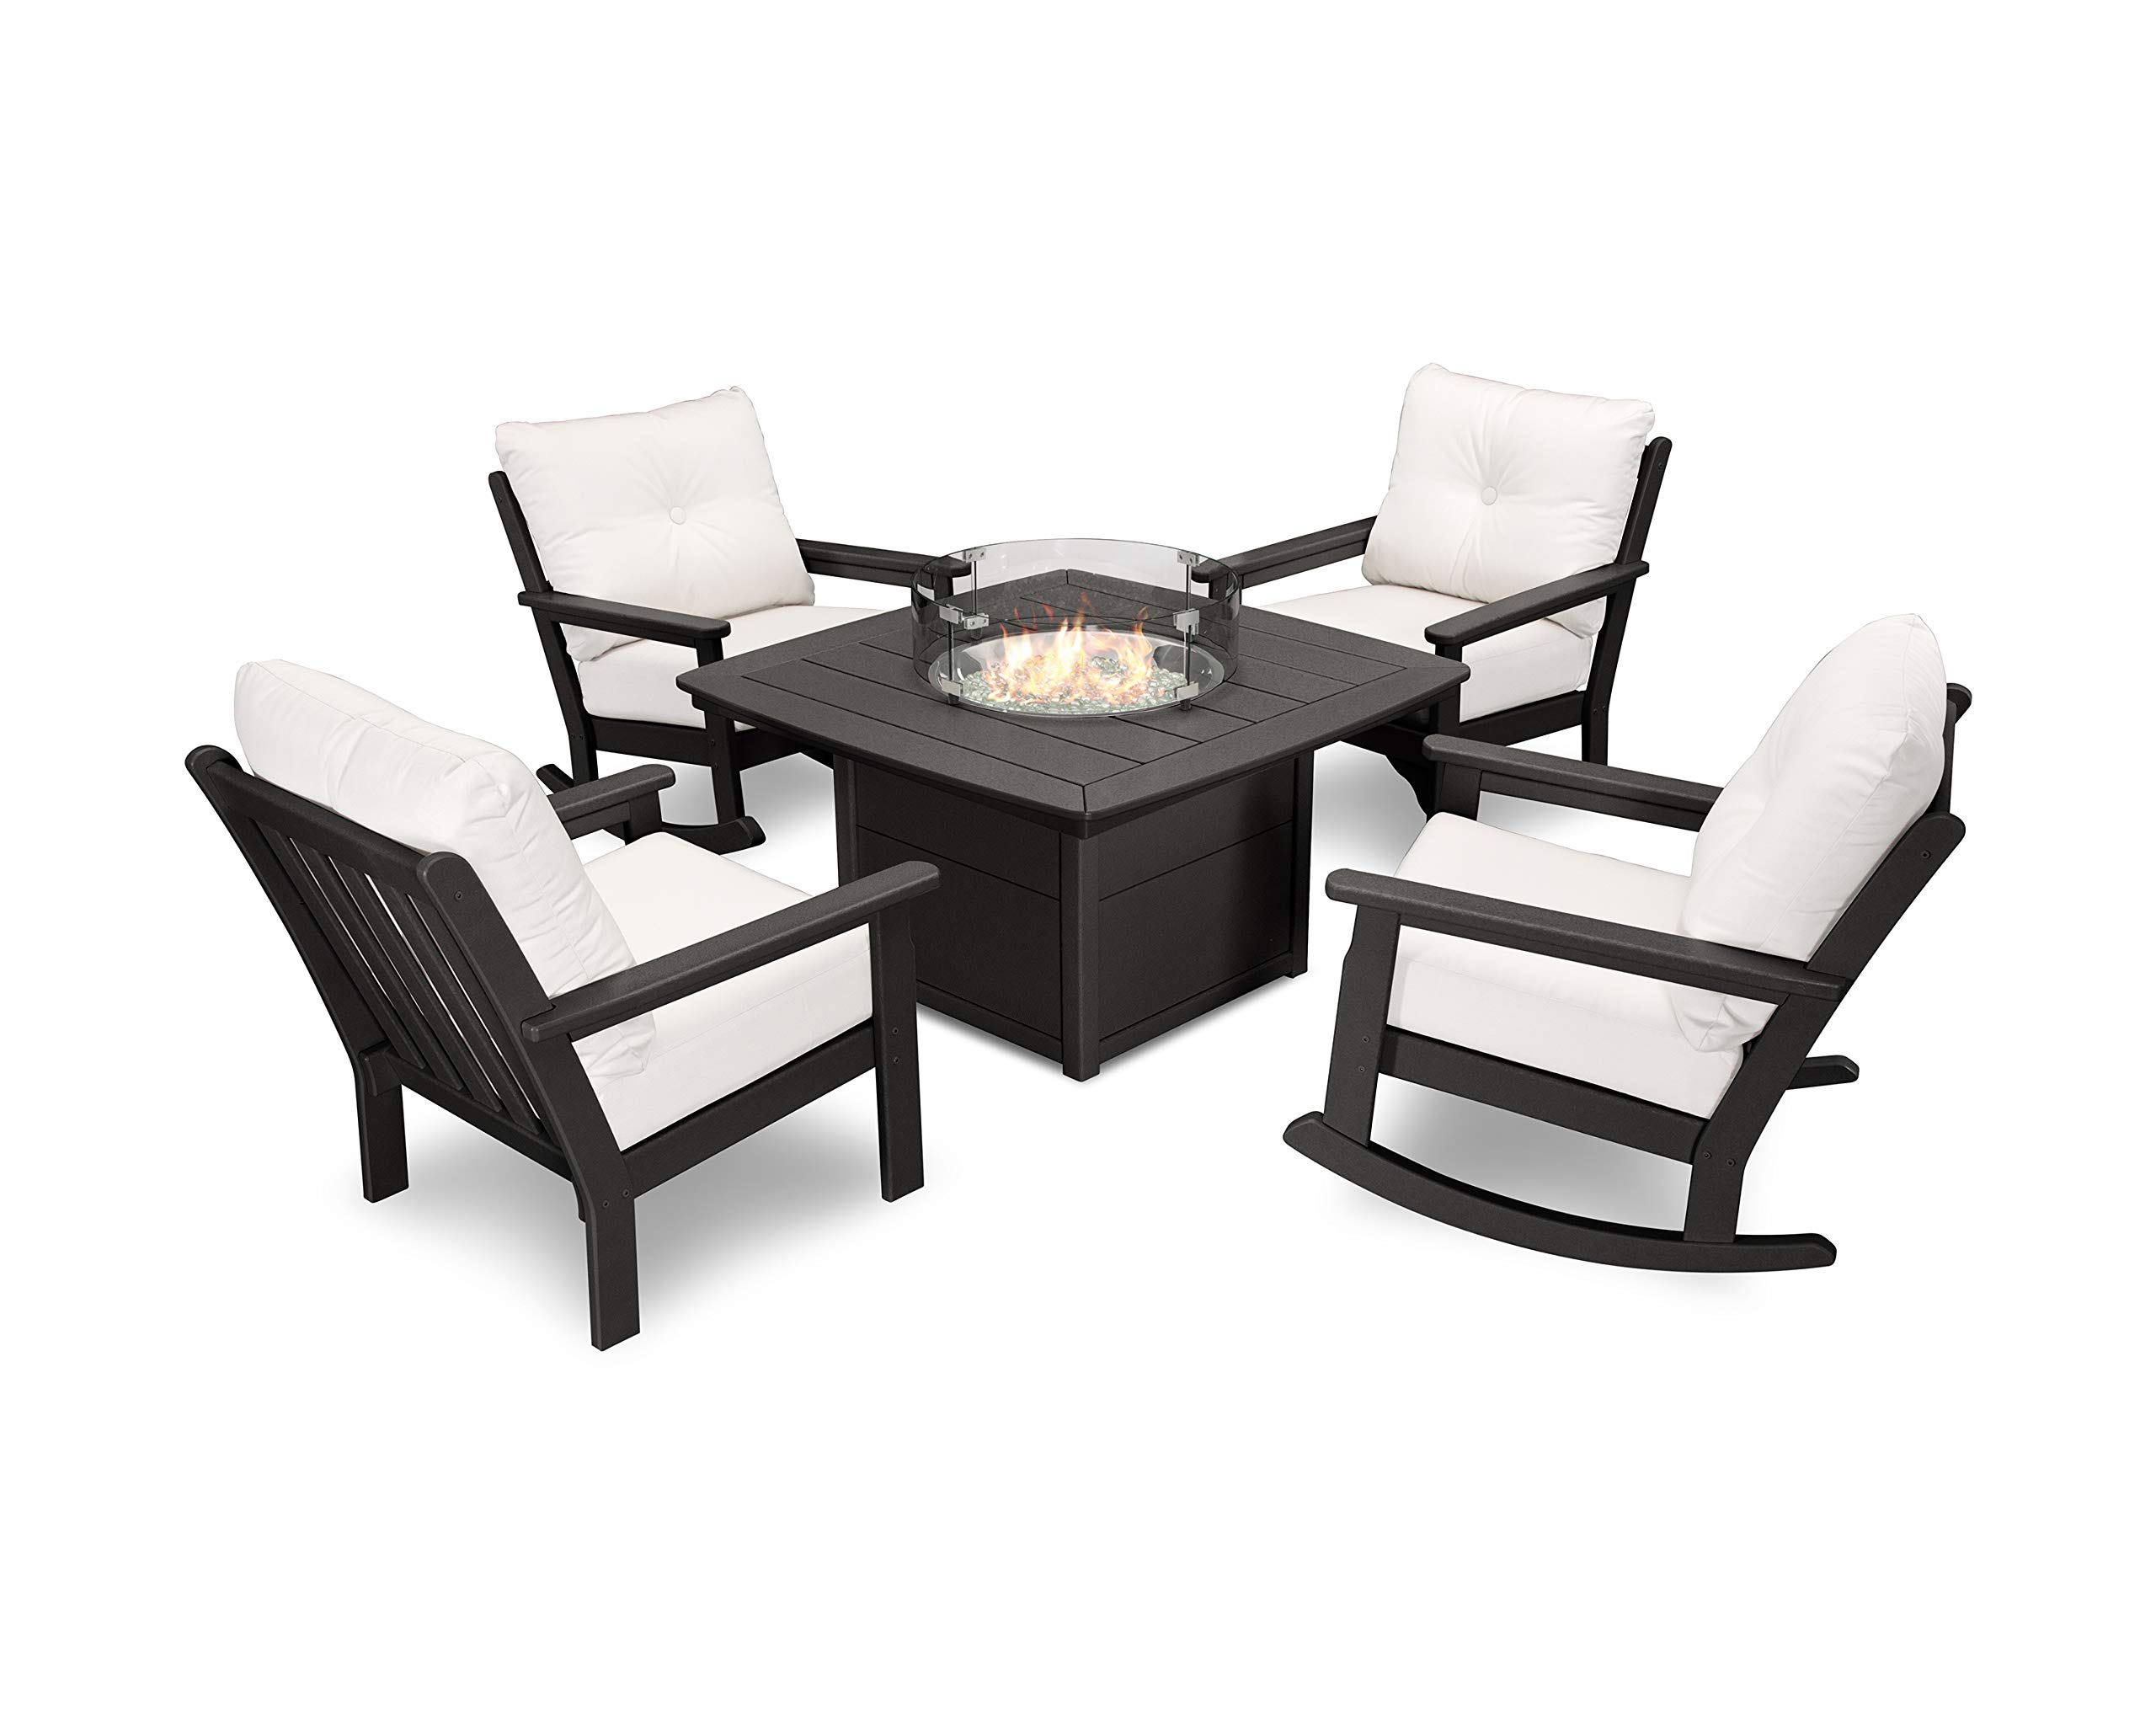 POLYWOOD Vineyard 5-Piece Deep Seating Rocking Chair Conversation Set with Fire Pit Table (Black/Bird's Eye)